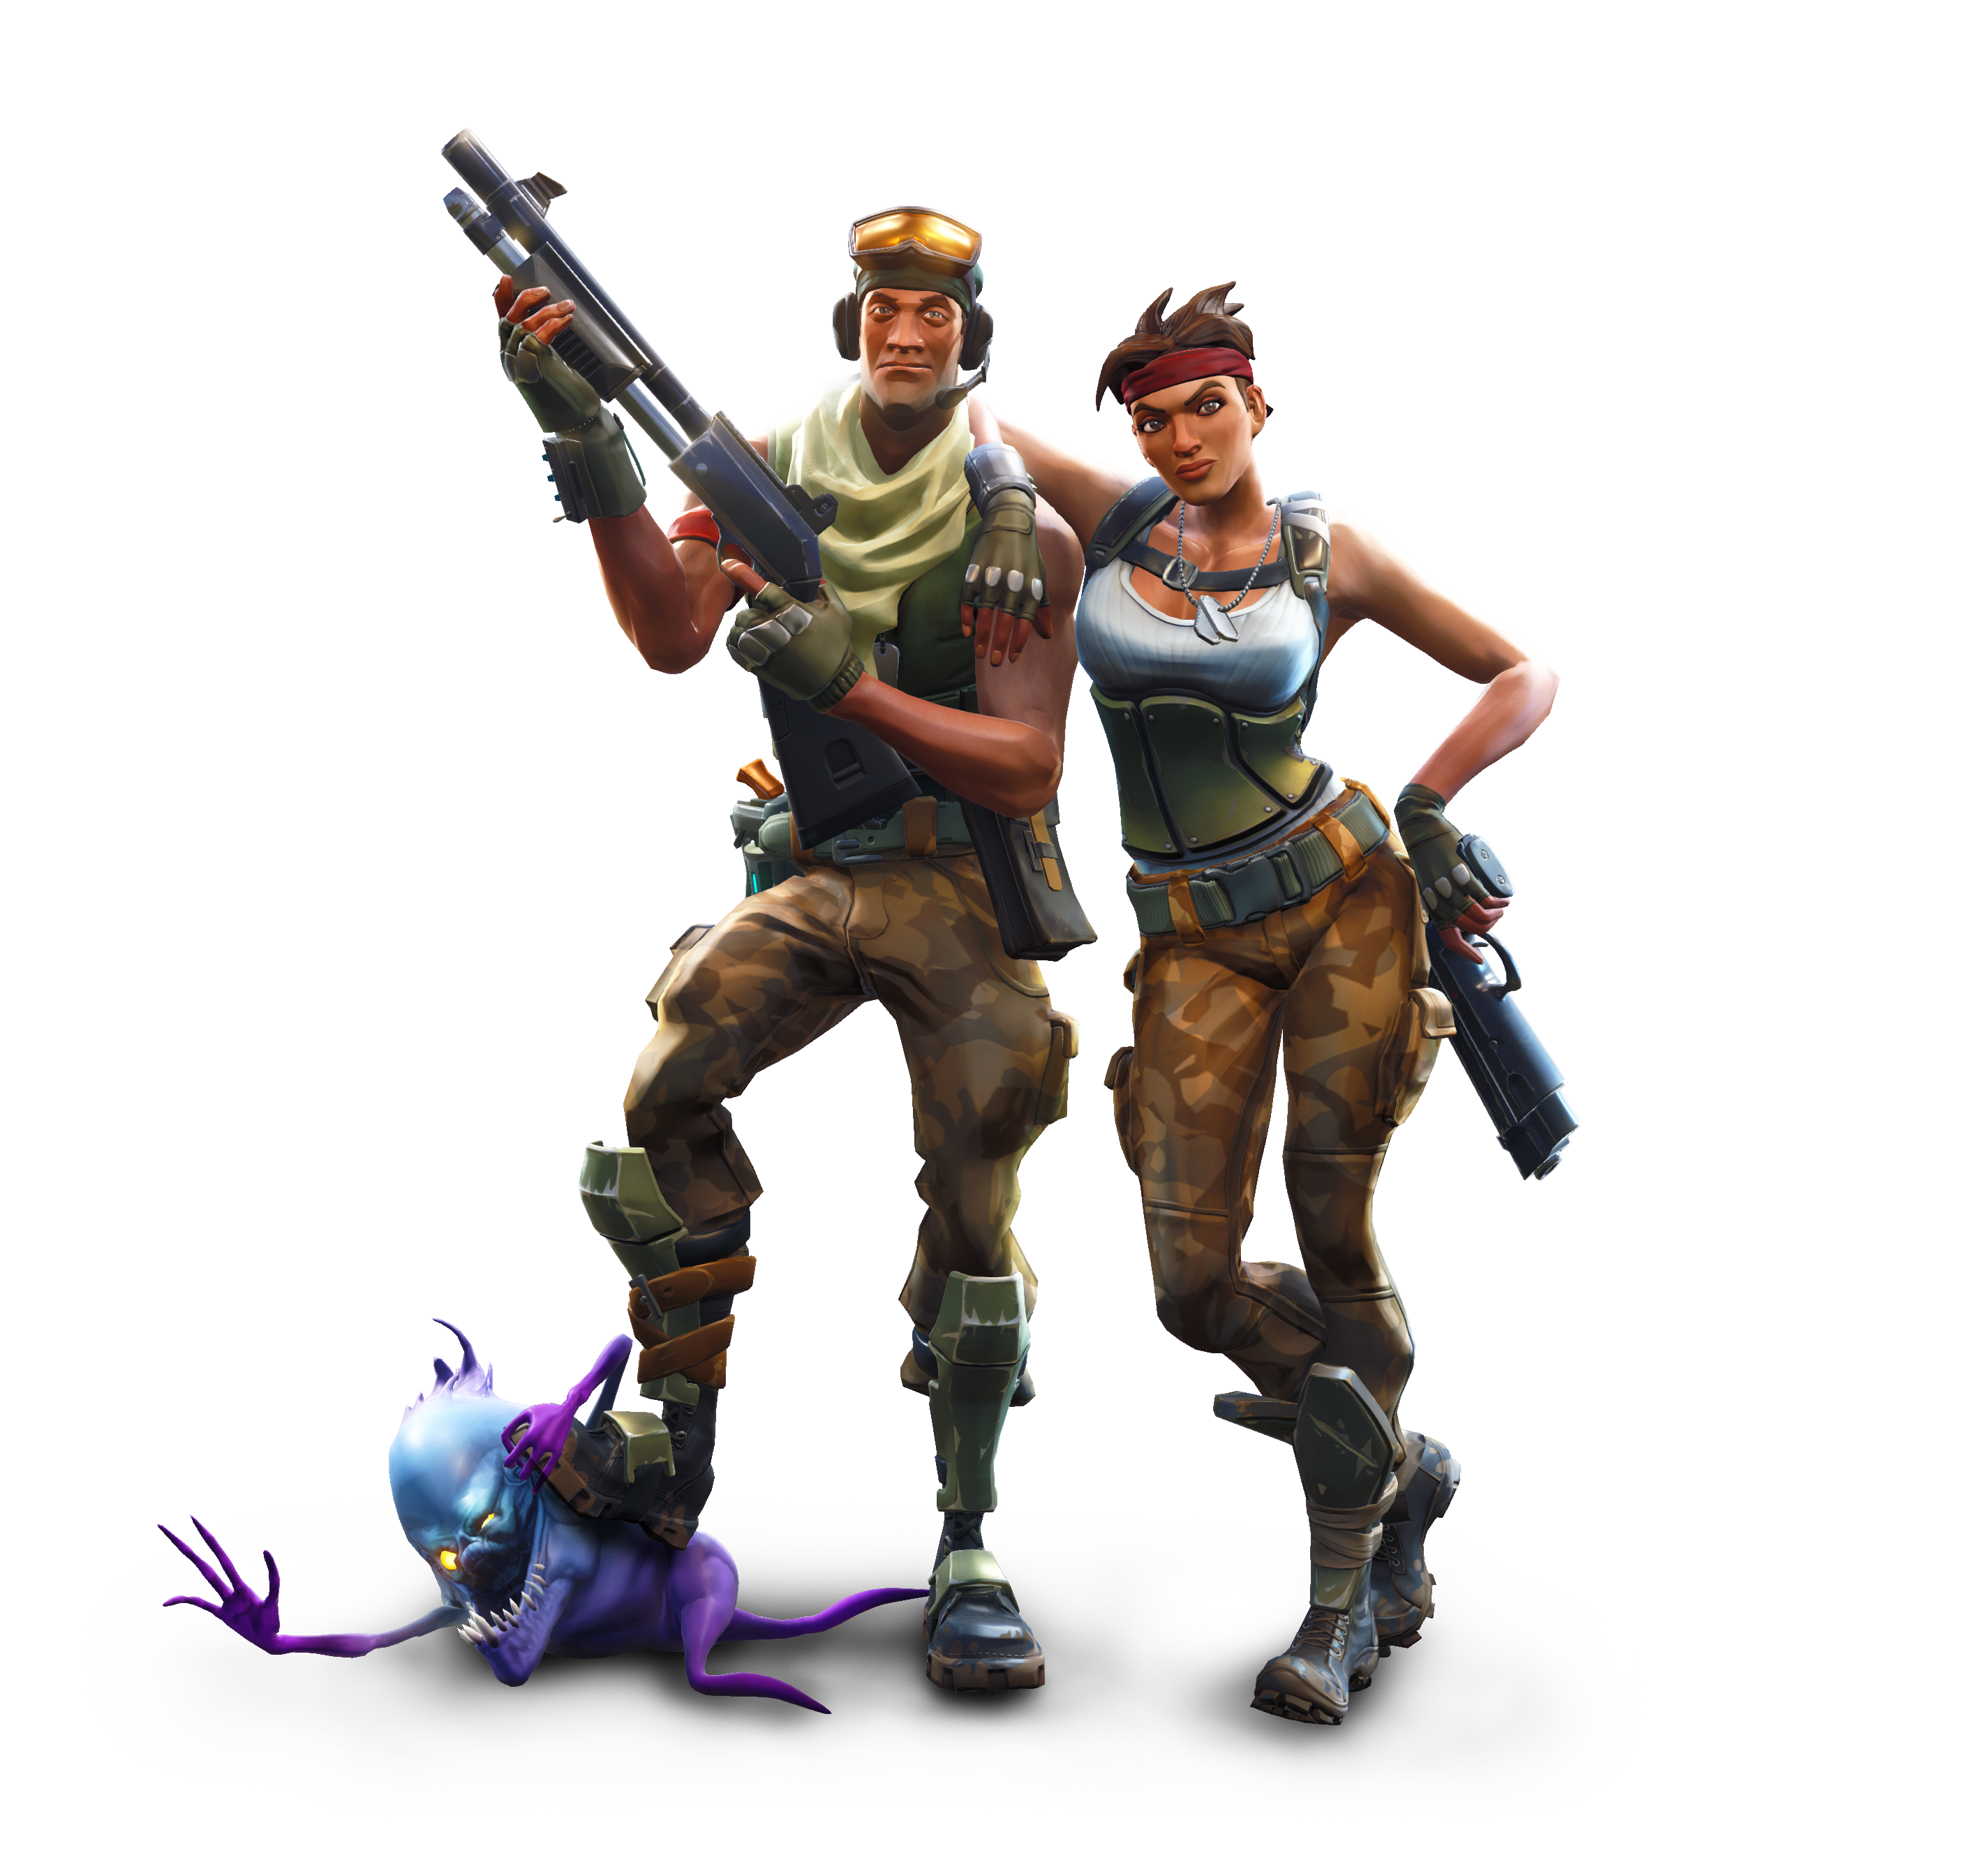 Crystal Fortnite Hd Png Download Is Free Transparent Png Image To Explore More Similar Hd Image On Pngitem Skin Images Gamer Pics Brothers Photography